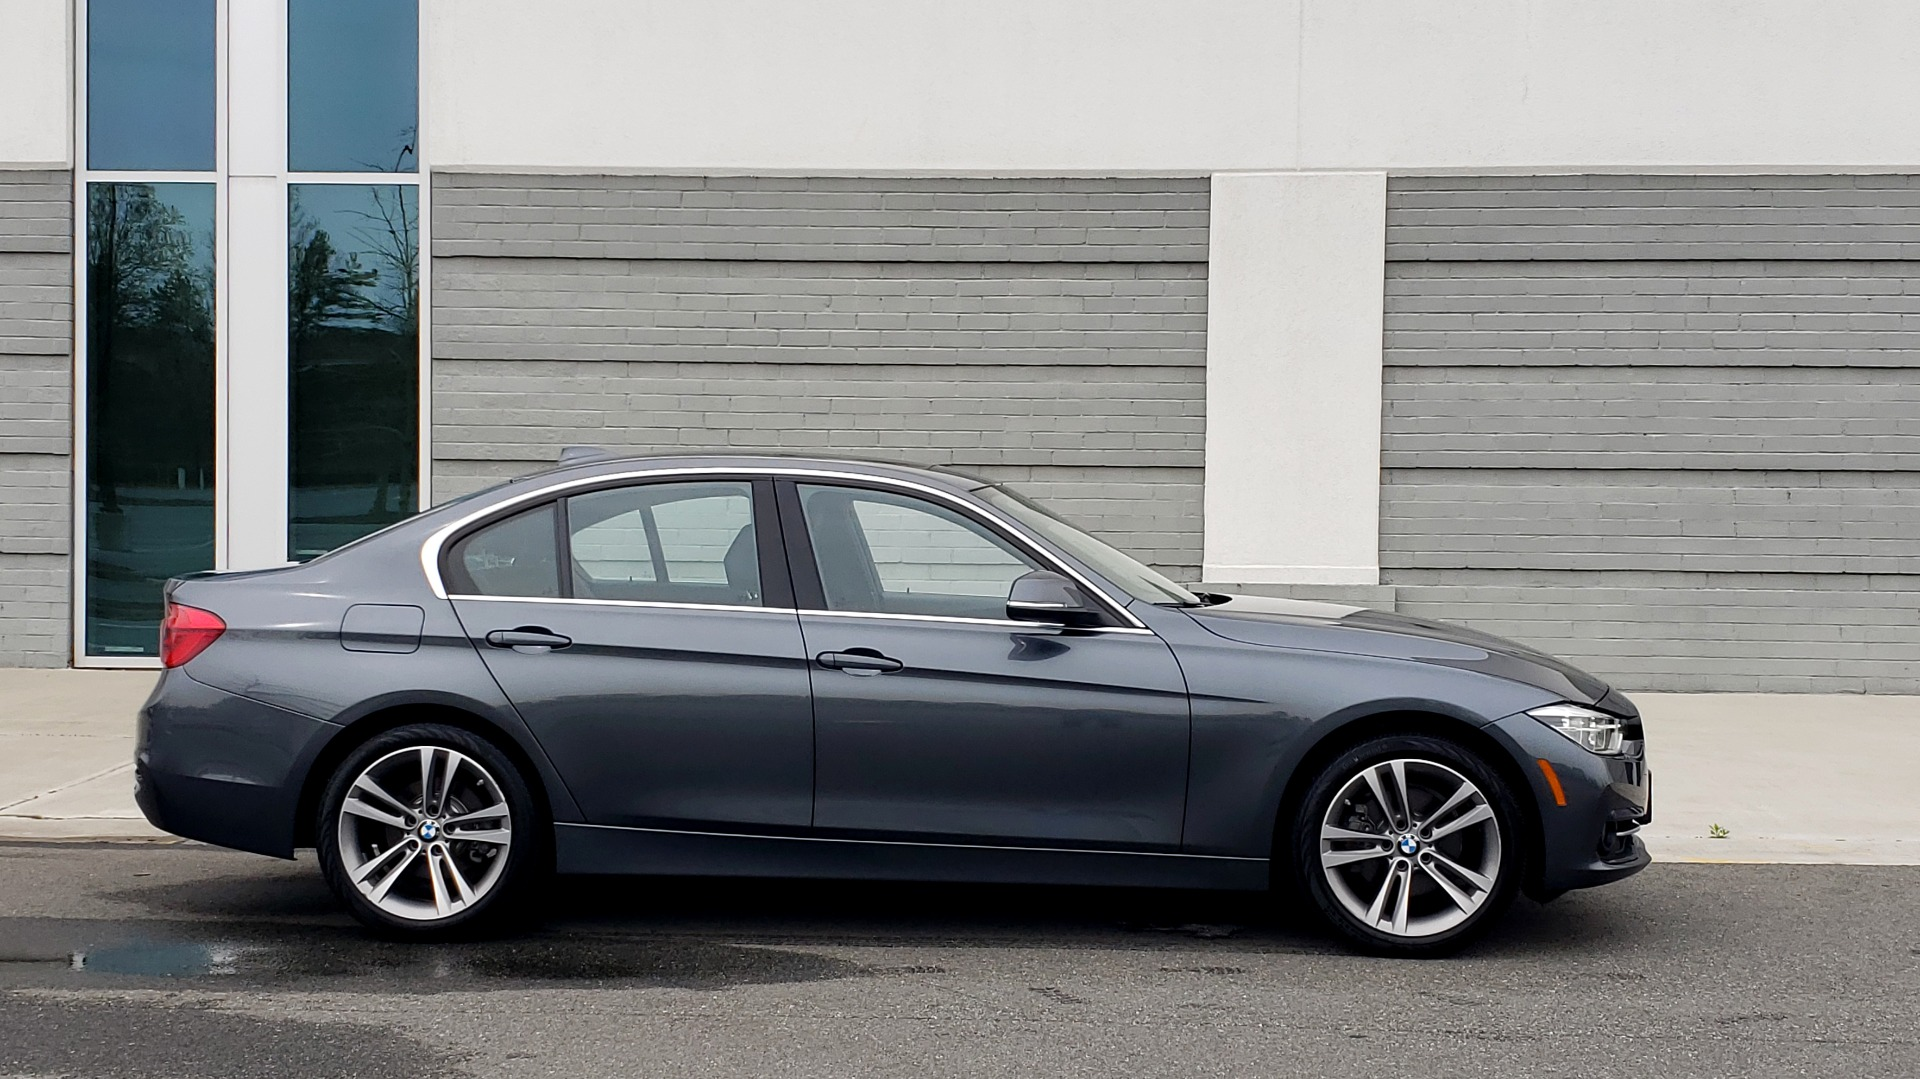 Used 2018 BMW 3 SERIES 330I XDRIVE PREMIUM / CONV PKG NAV / BLIND SPOT / HTD STS / REARVIEW for sale $22,695 at Formula Imports in Charlotte NC 28227 4